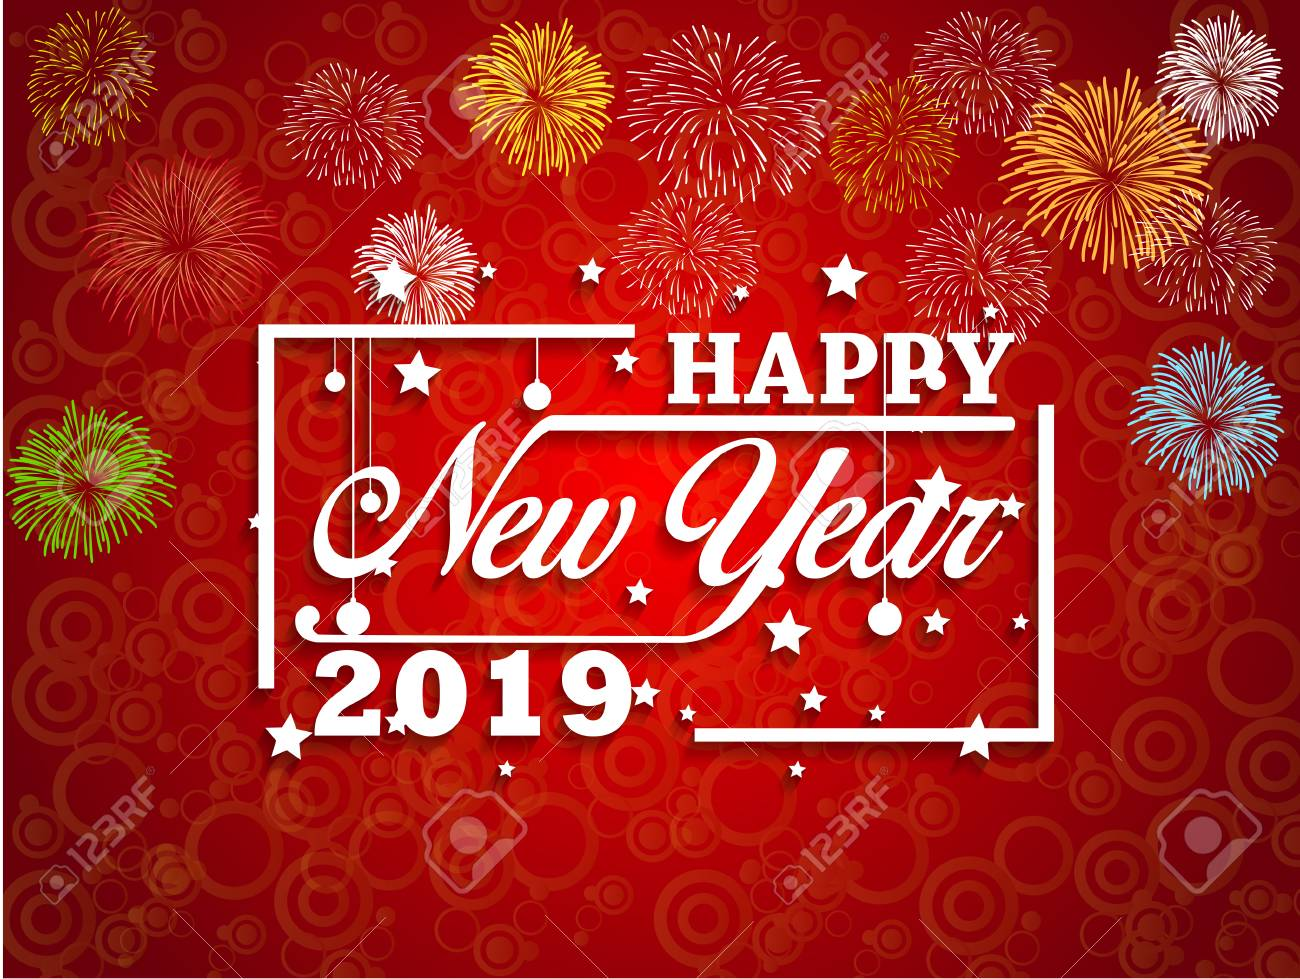 2019 happy new year greeting card with colorful fireworks vector design template stock vector